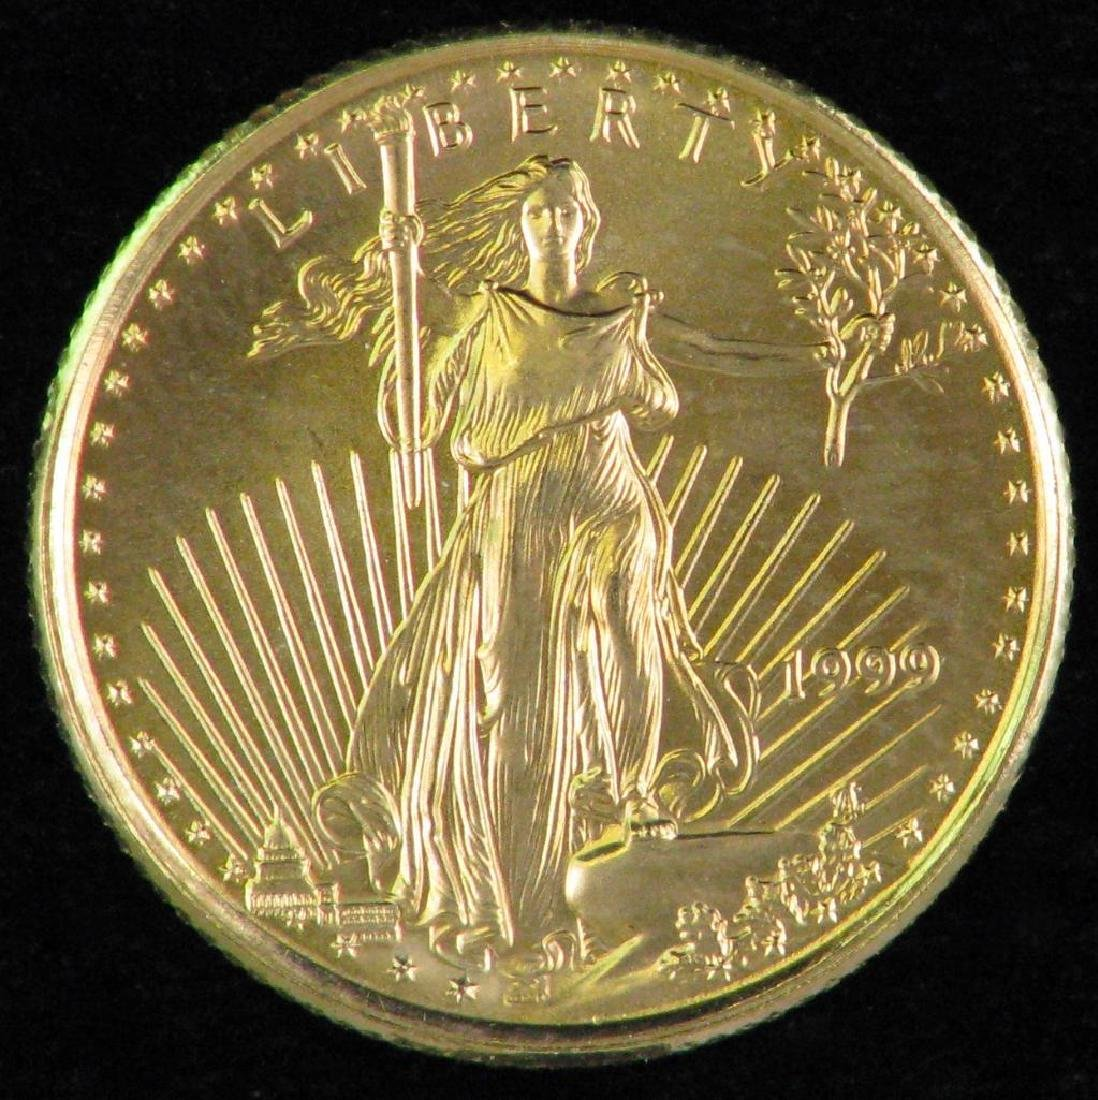 1999 American Eagle $5 Gold Piece